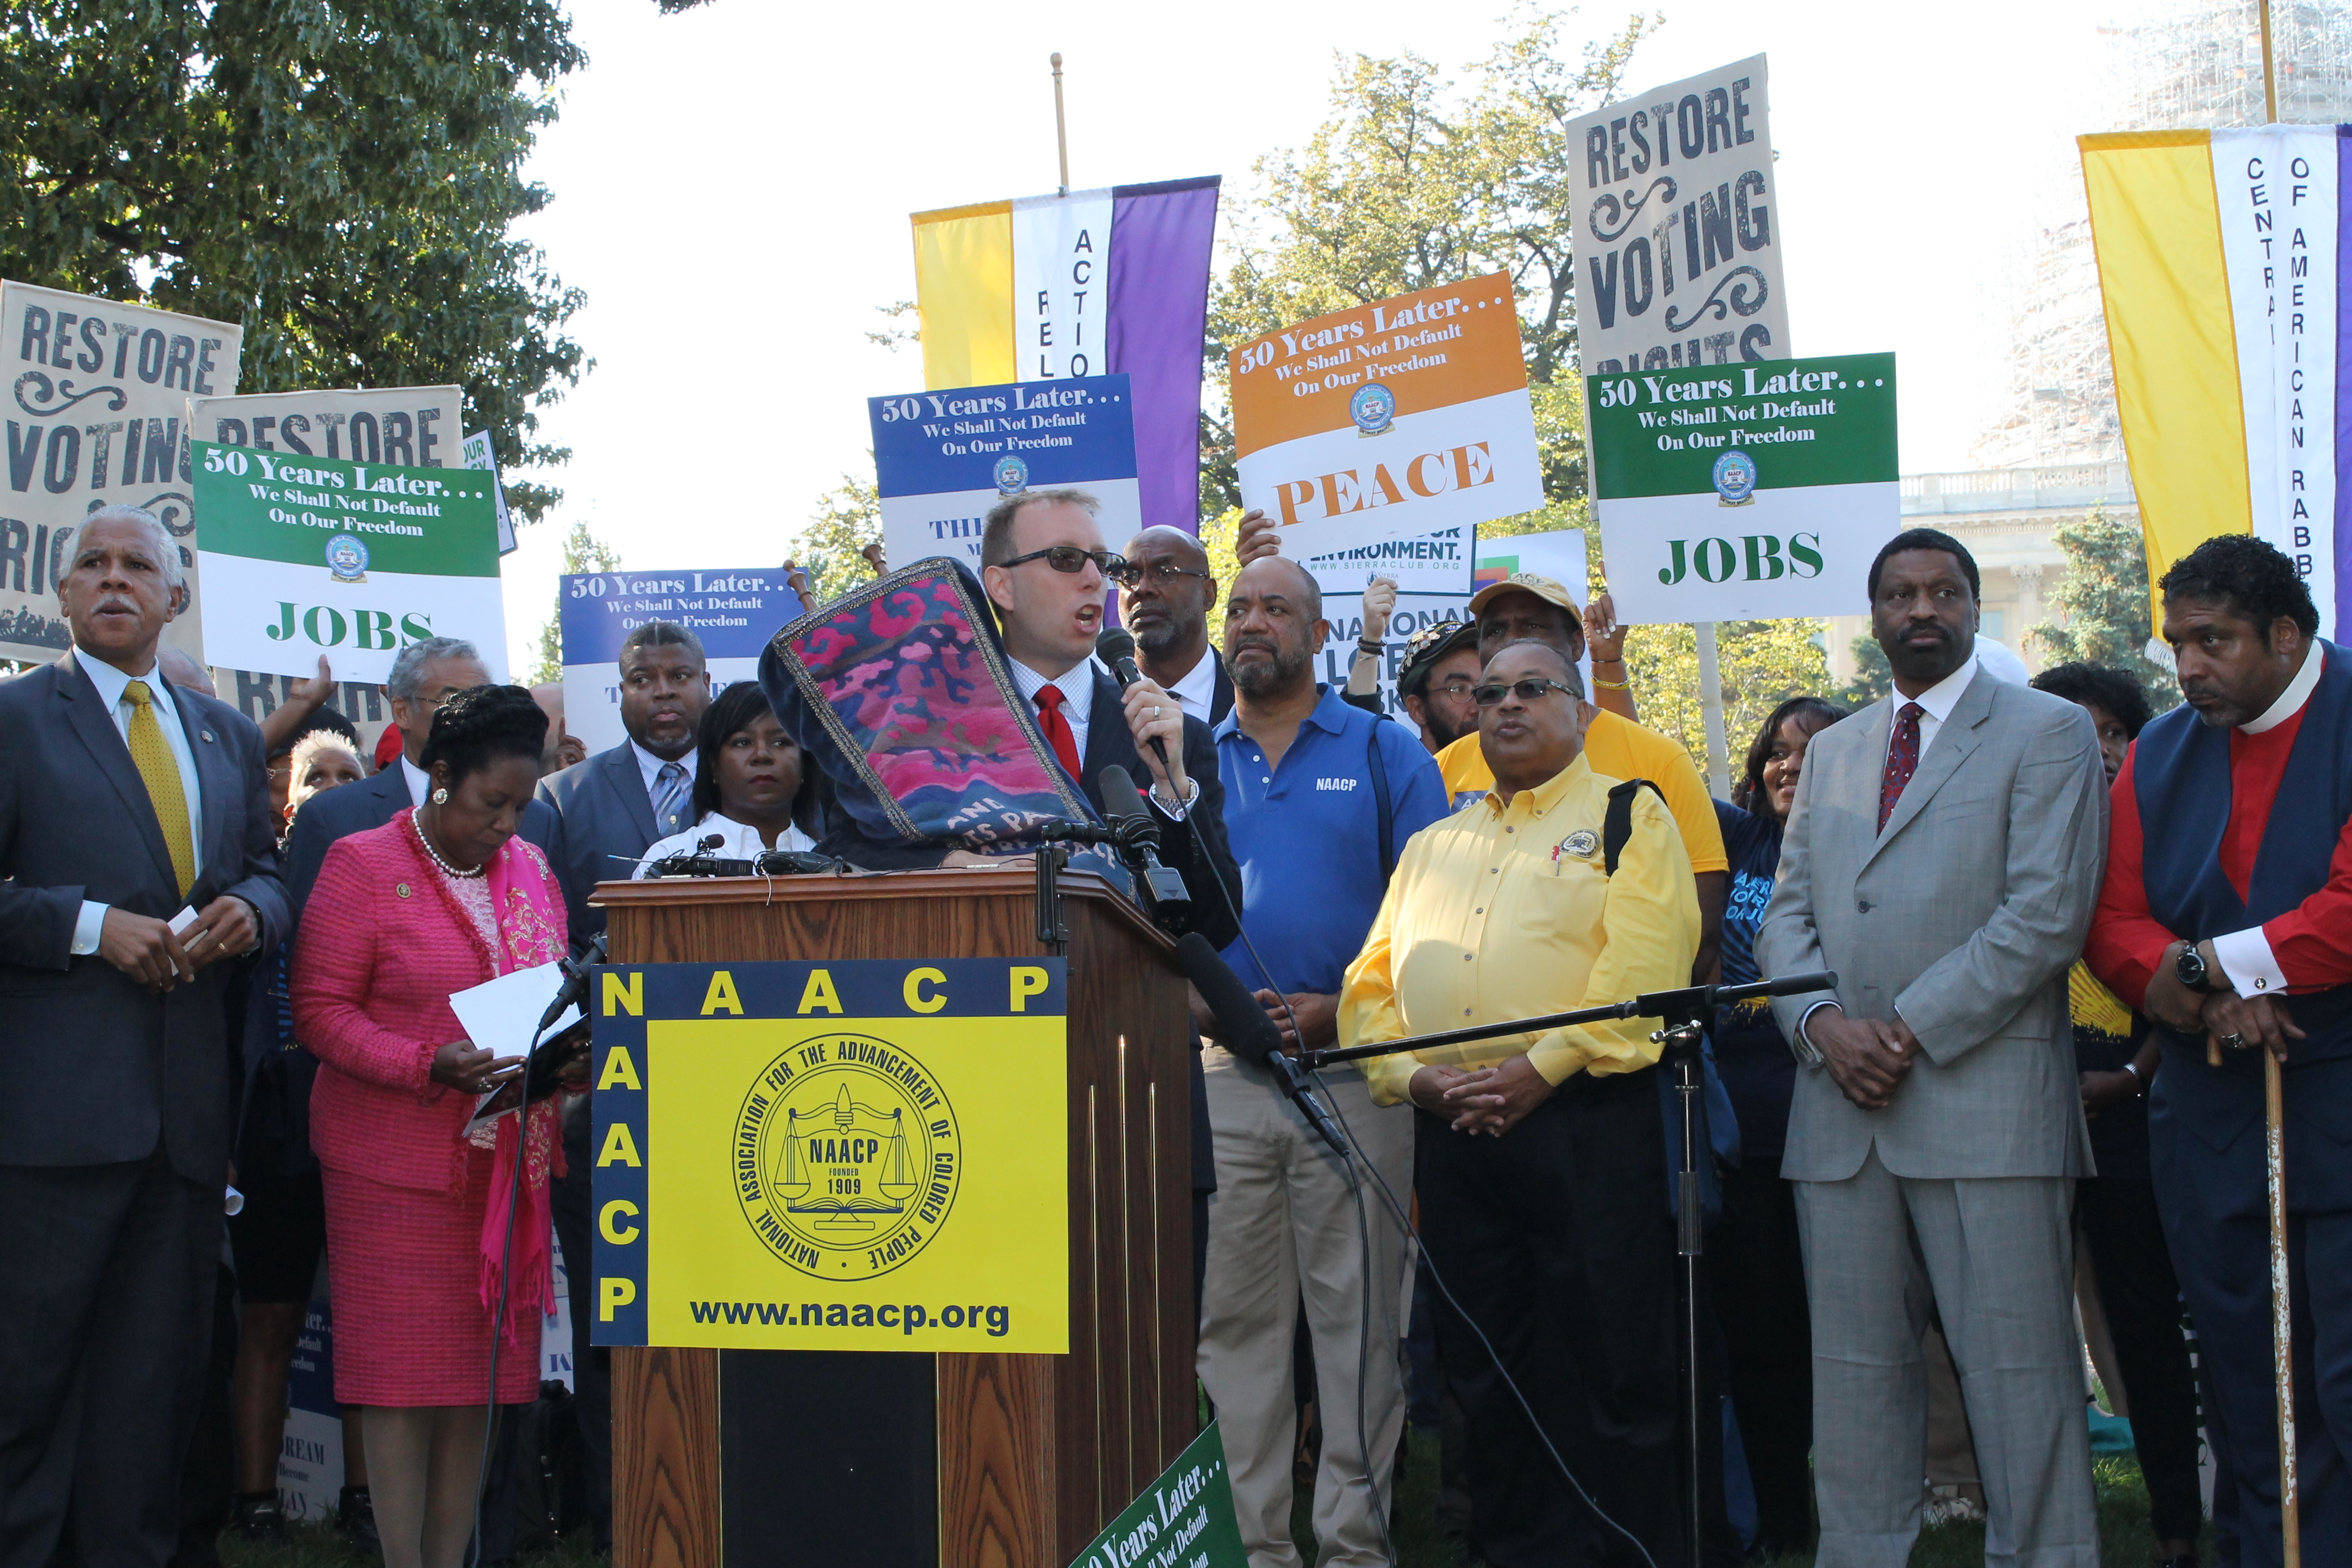 Rabbi Seth Limmer Speaking at the Journey for Justice rally